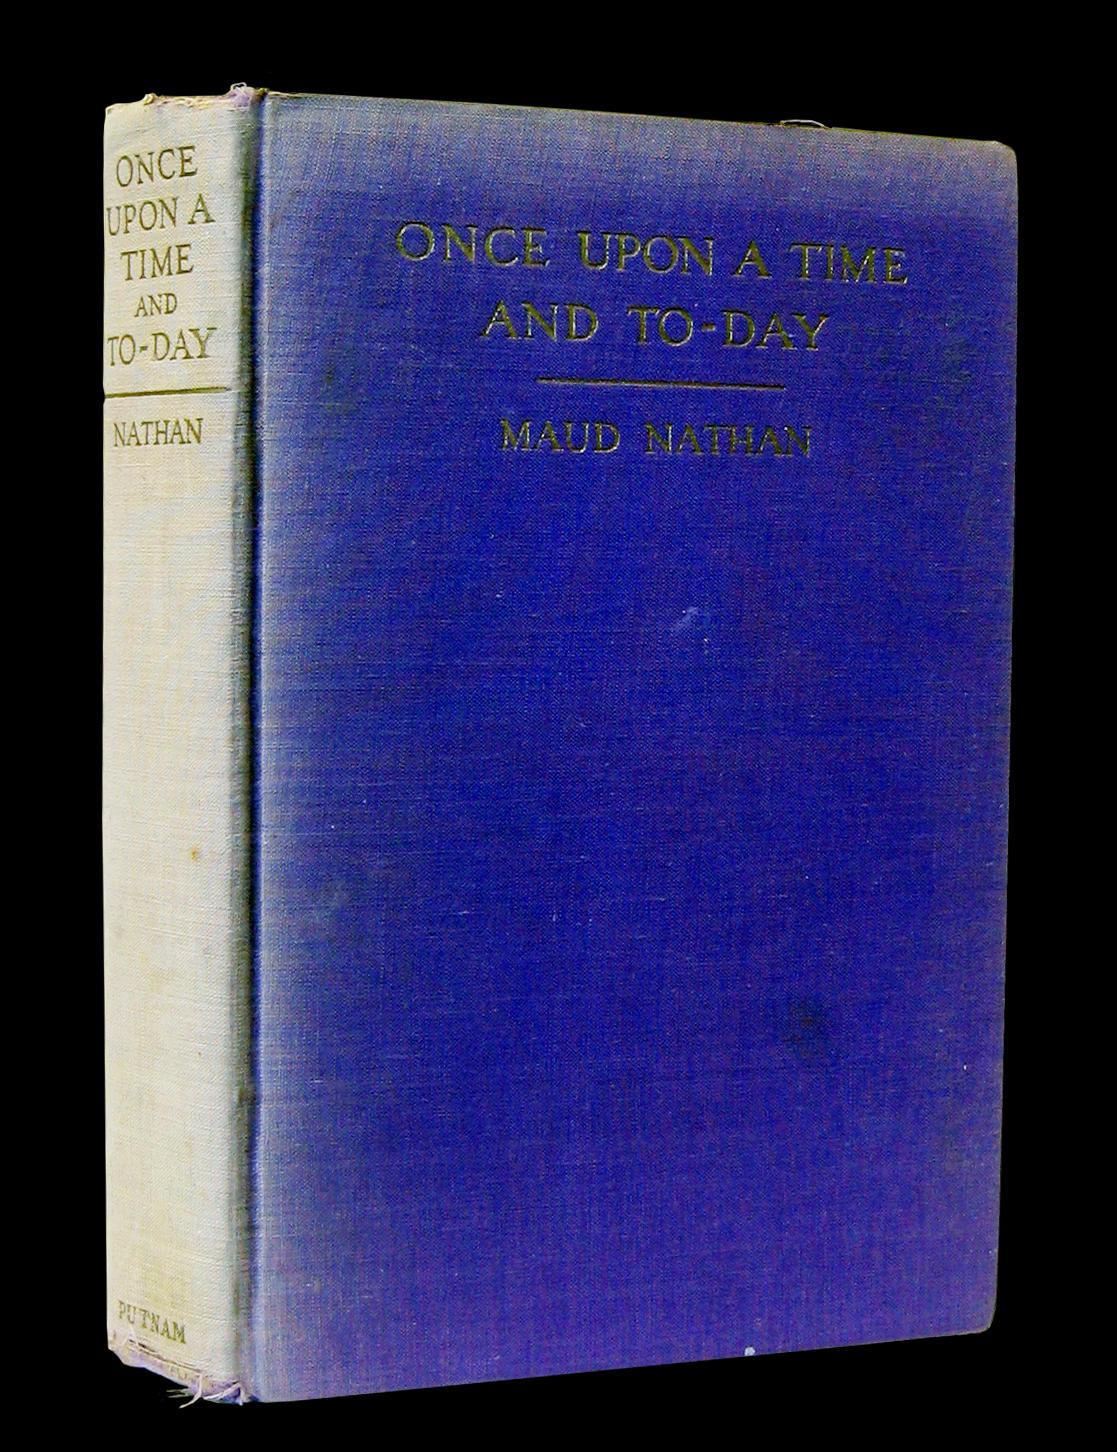 Once Upon a Time and Today by Maud Nathan cover